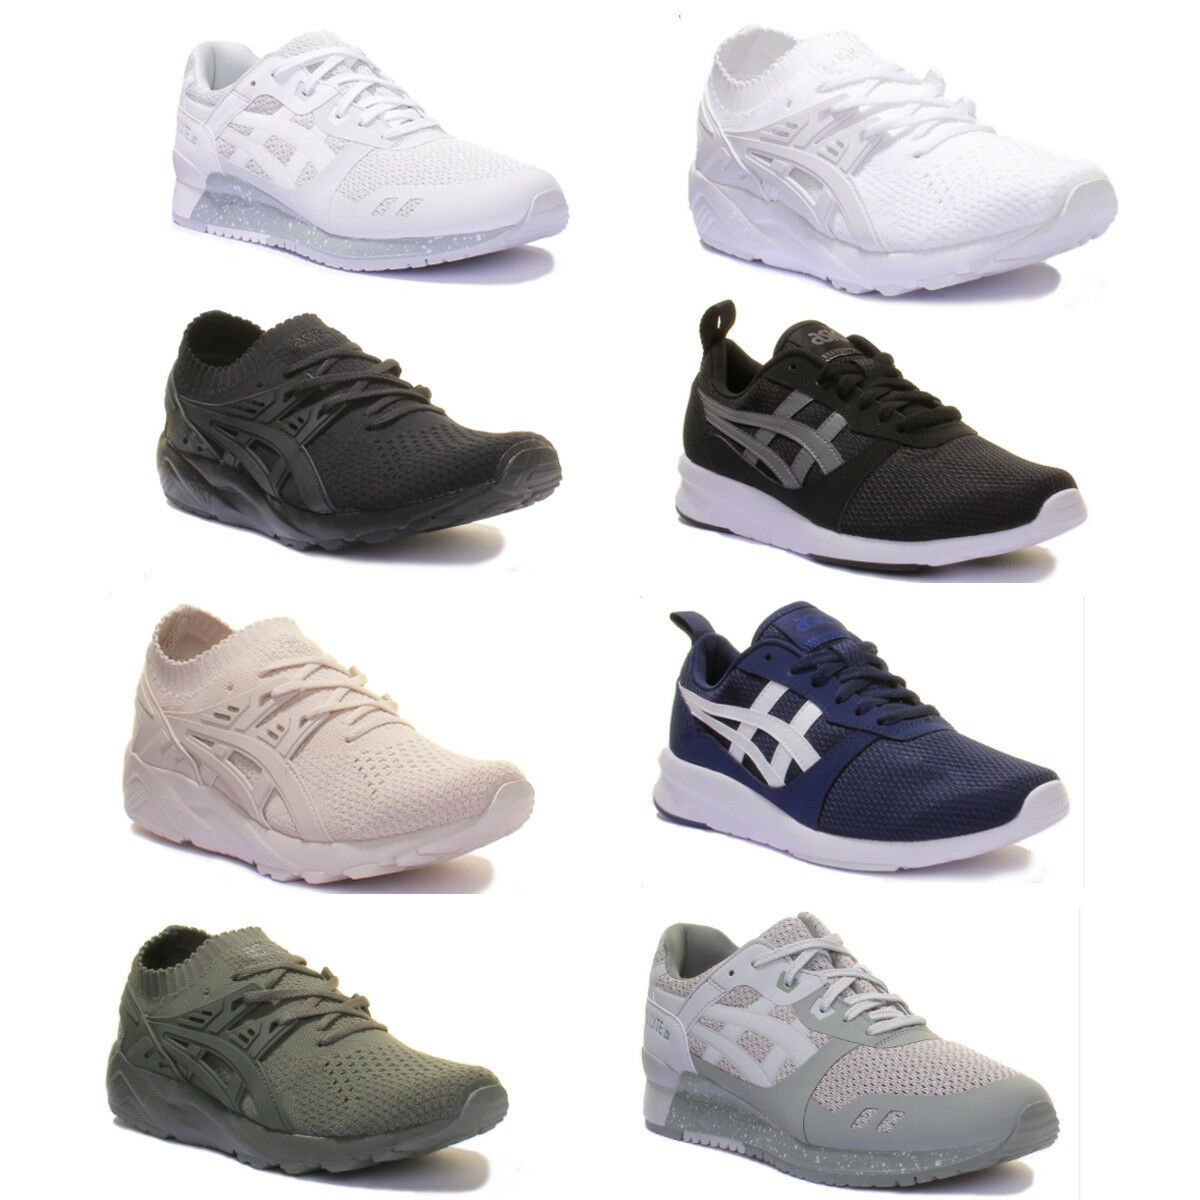 Asics Gel Lyte III 3 NO STICH Pack Trainers Comfortable New shoes for men and women, limited time discount